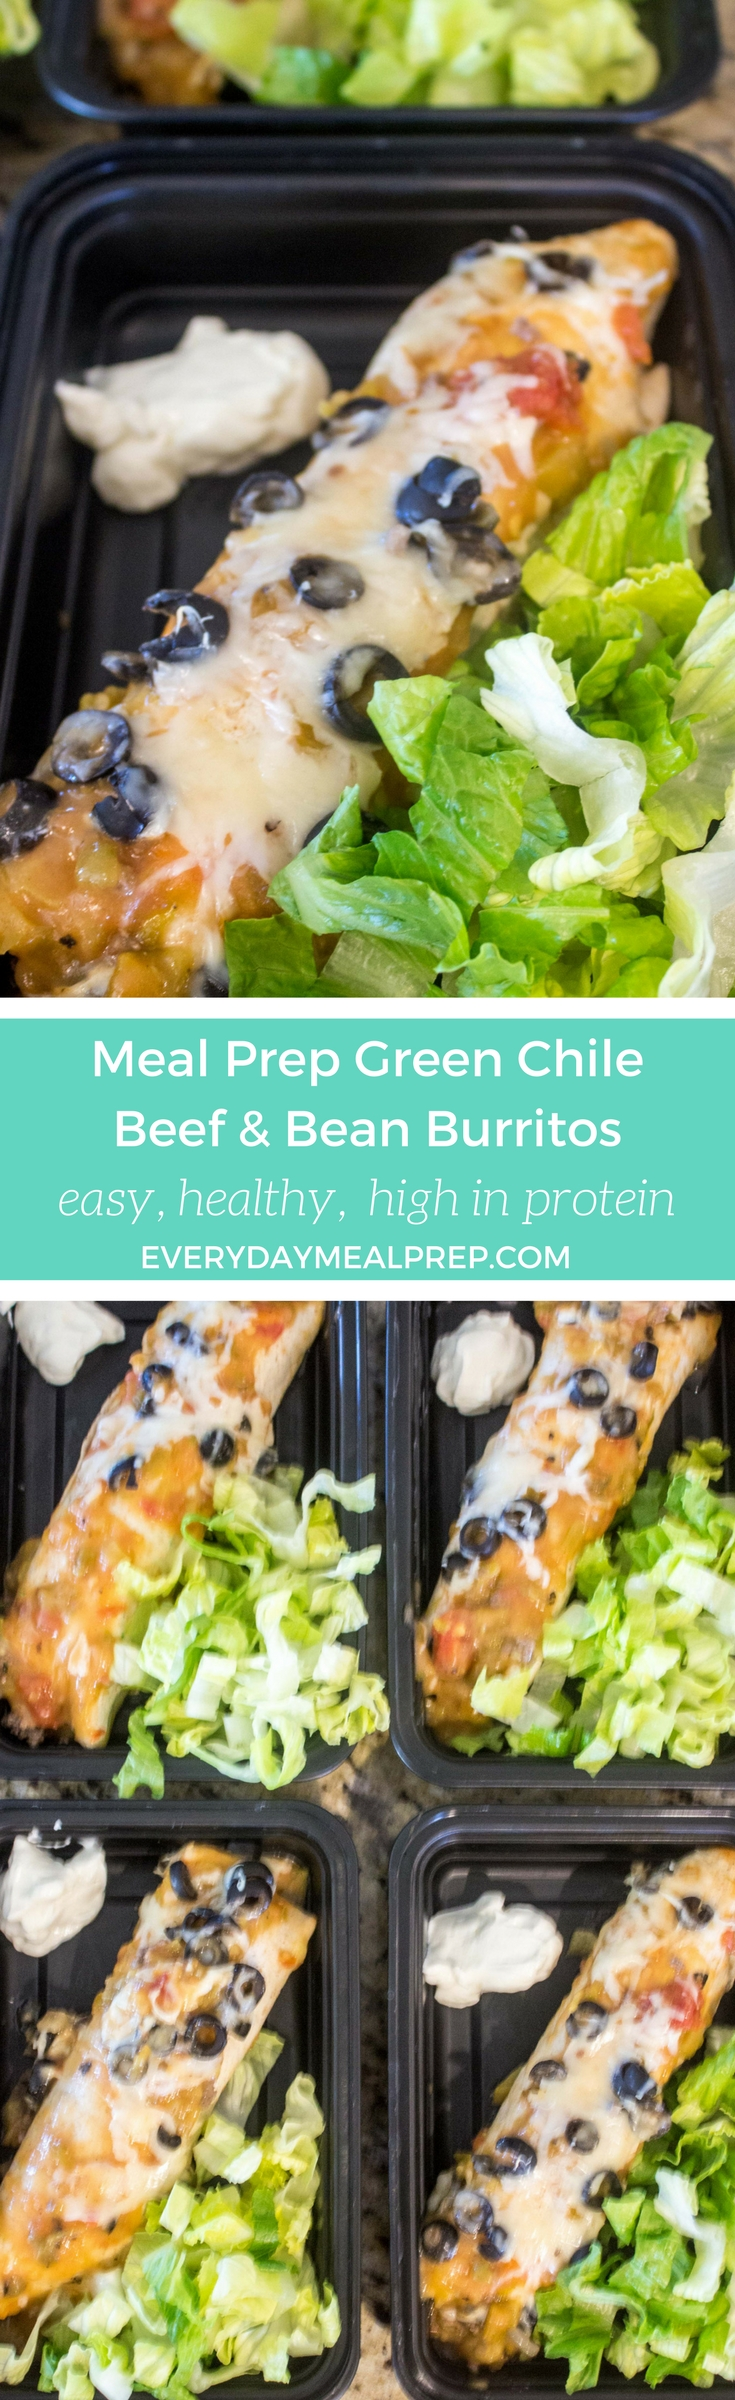 Meal Prep Green Chile Beef & Bean Burritos